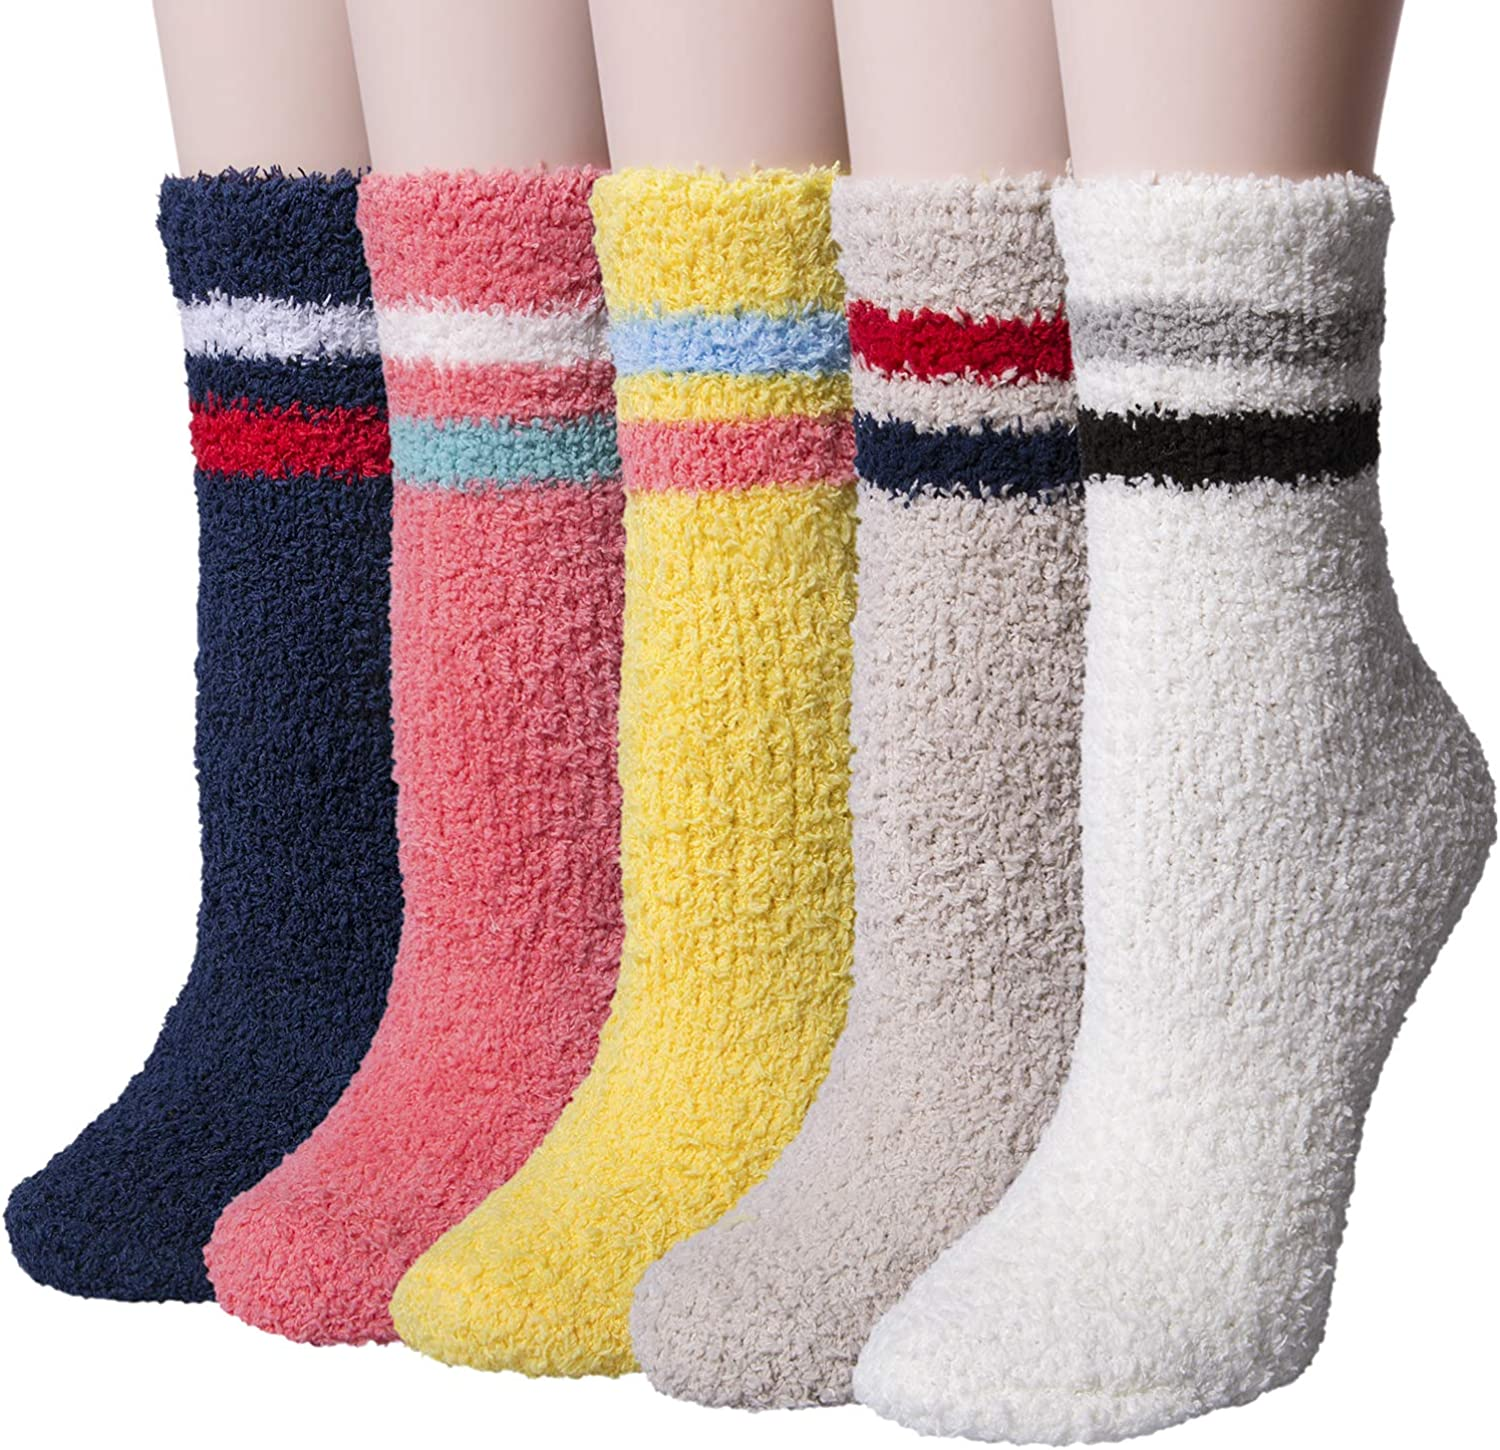 LERTREE 5 Pairs Womens Fuzzy Socks Soft Winter Warm Solid Socks for Ladies